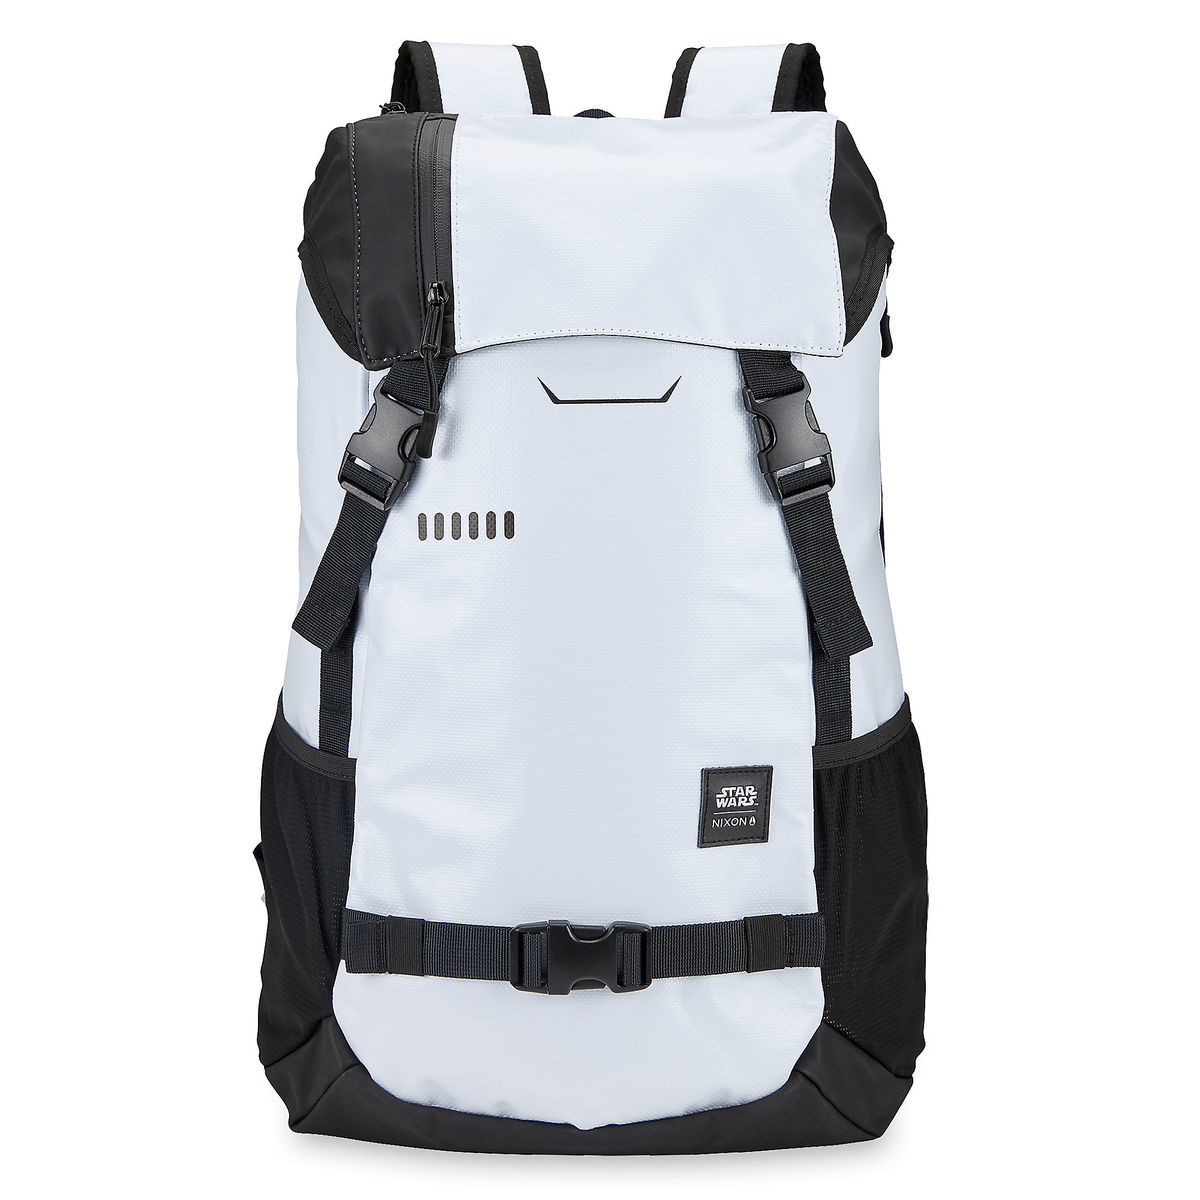 Product Image Of Stormtrooper Executioner Landlock Backpack By Nixon Star Wars The Last Jedi